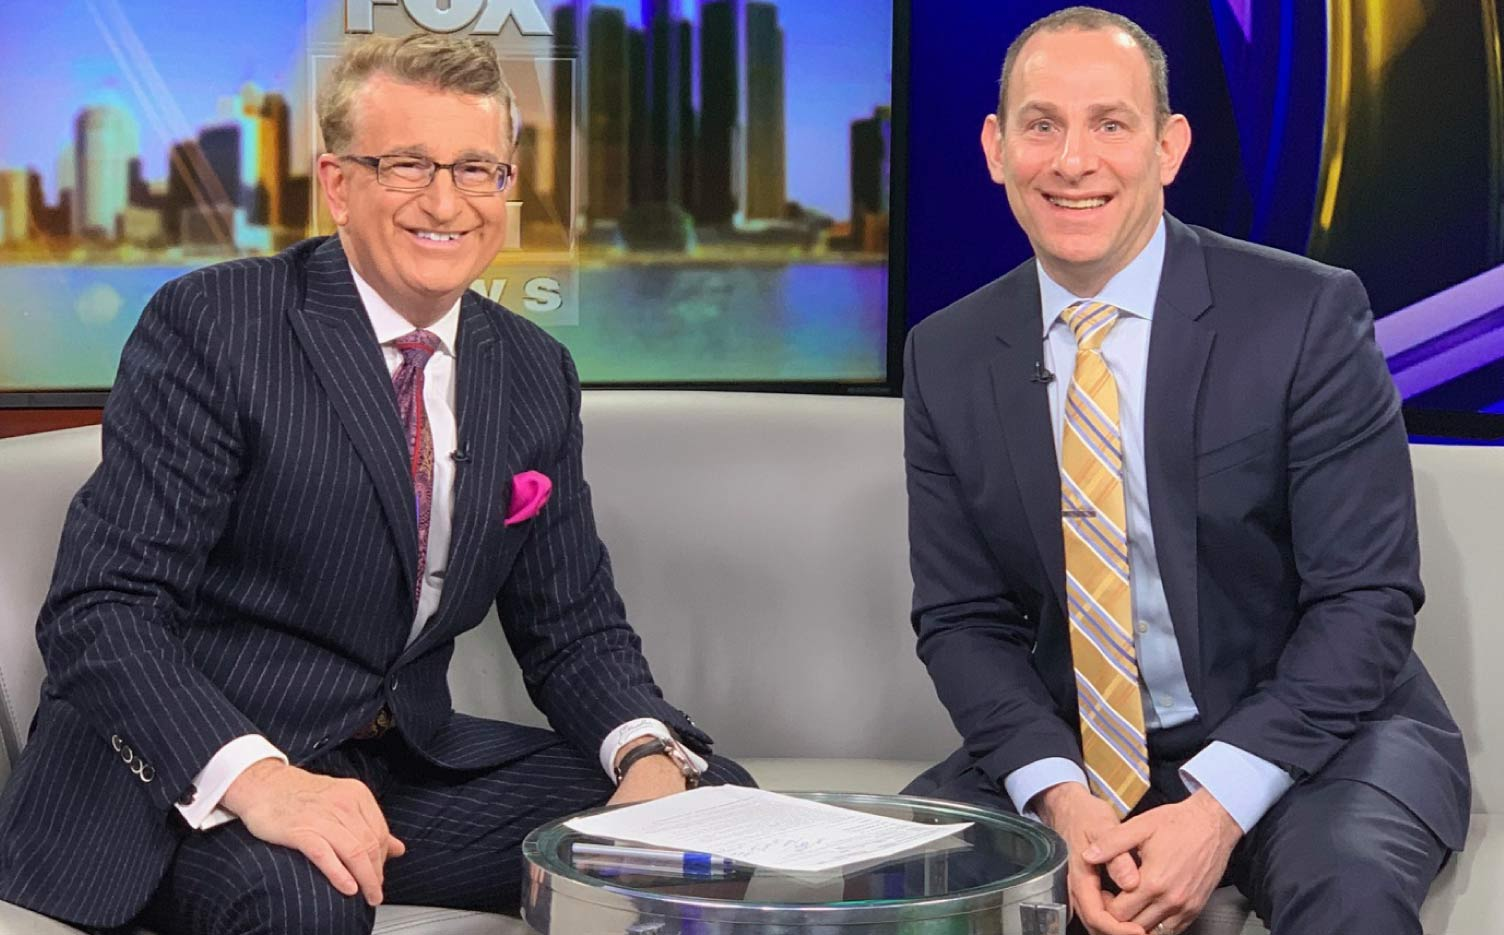 Jon Talks with Fox 2 News Anchor Charlie Langton: How to Get a Job After College